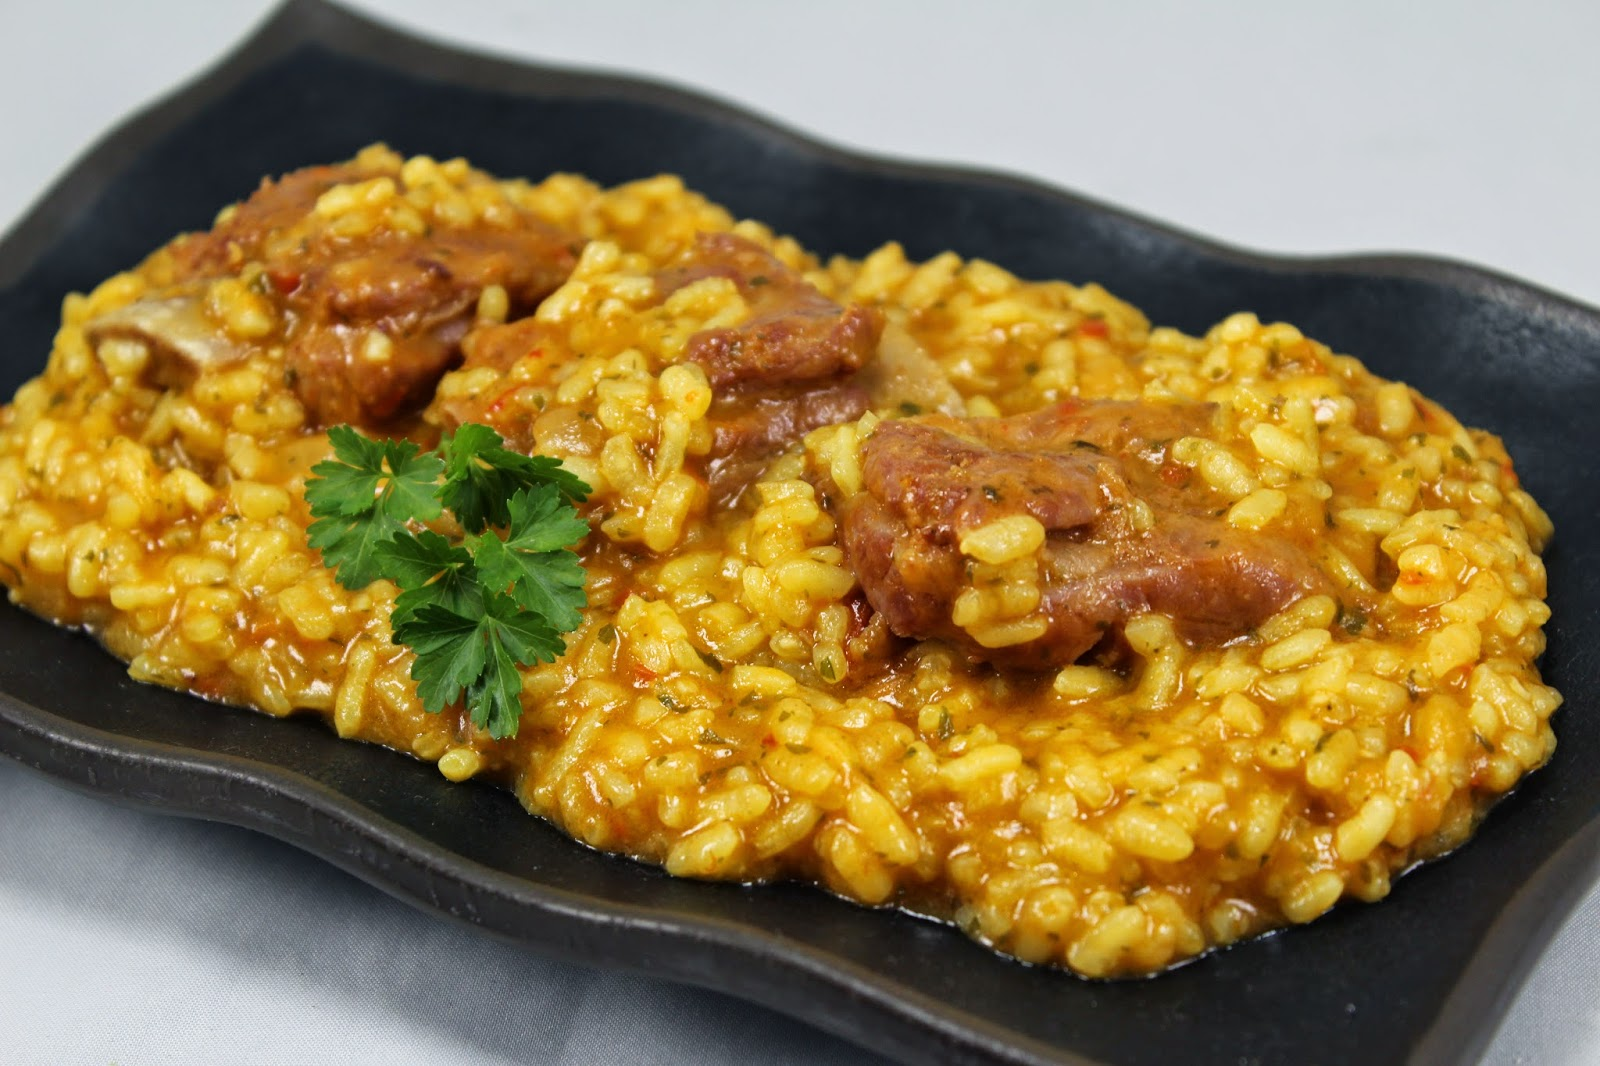 Arroz meloso con costillas adobadas